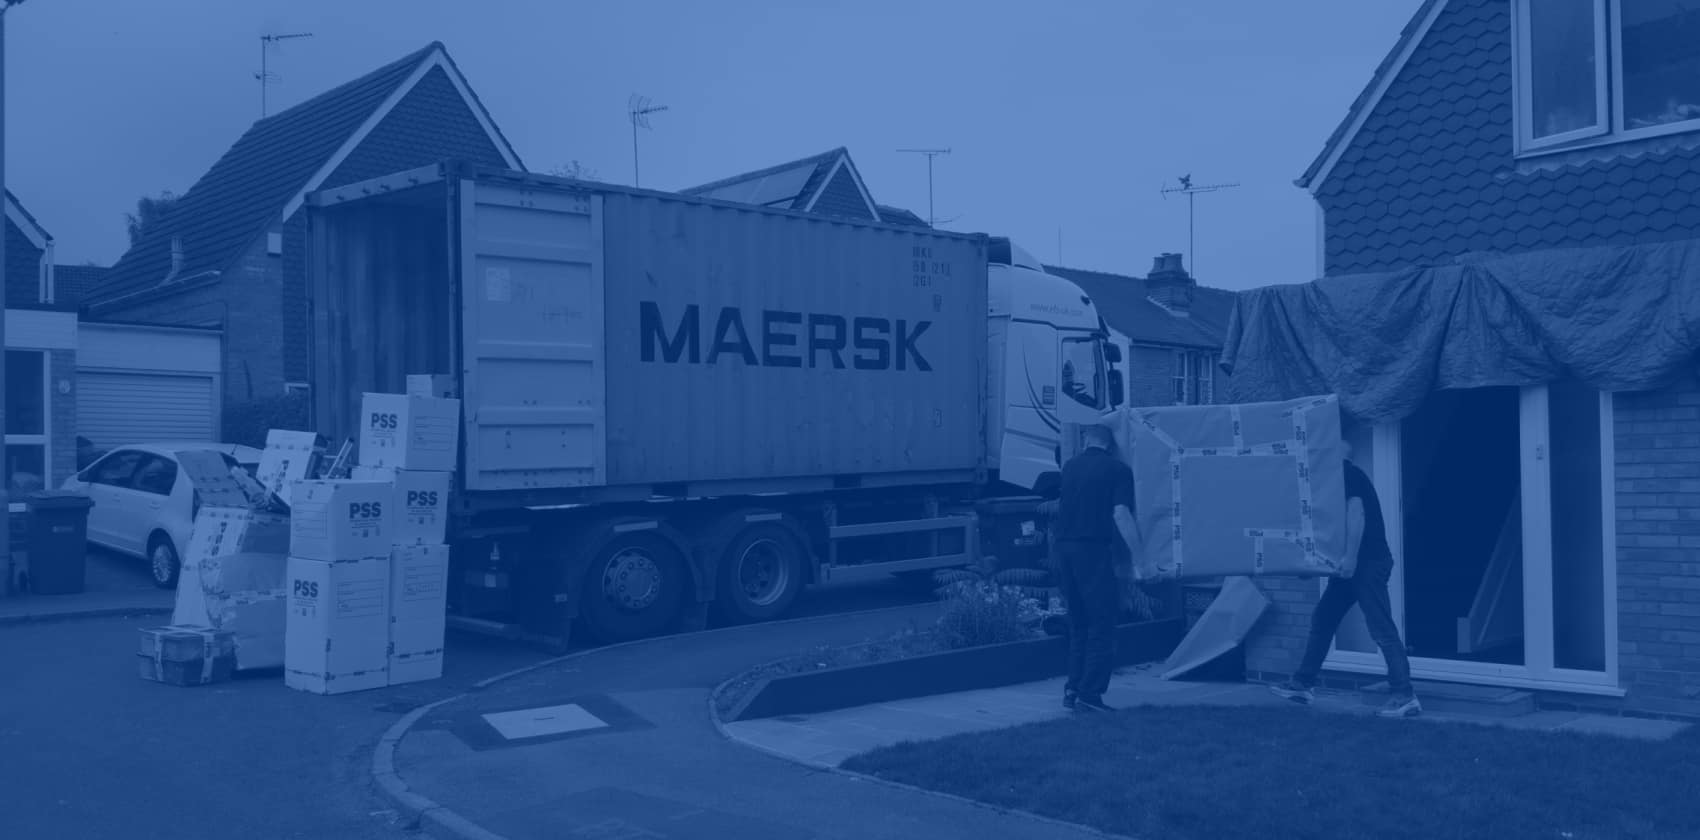 International removals packing